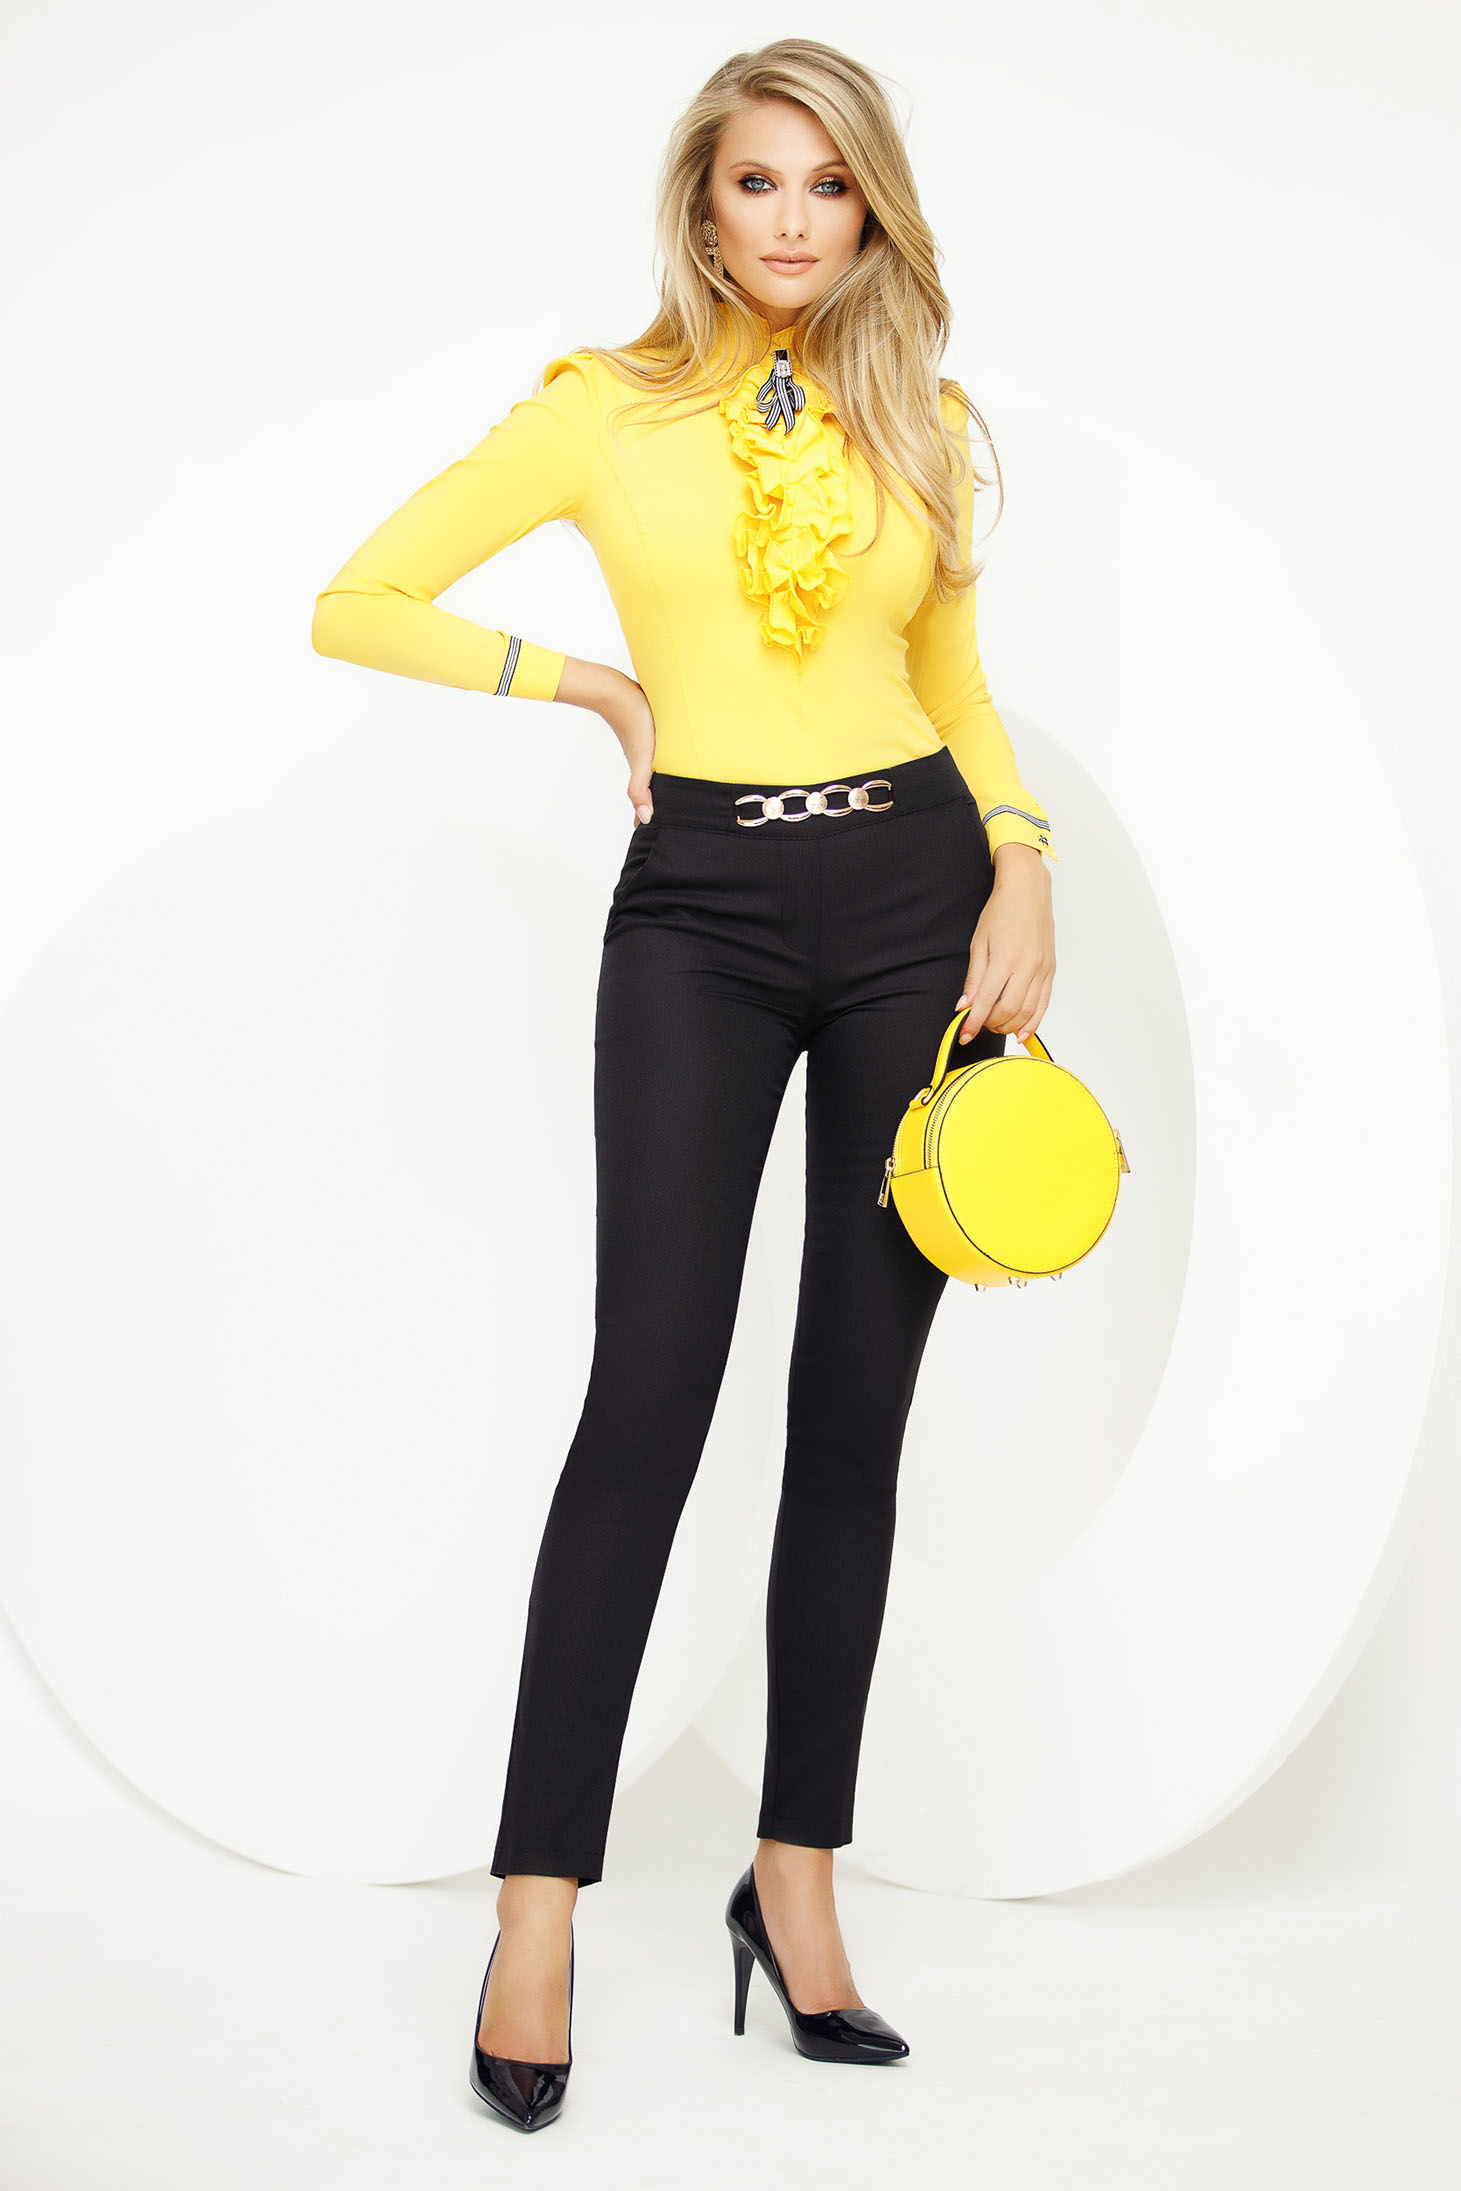 Black trousers office conical medium waist with metalic accessory slightly elastic fabric